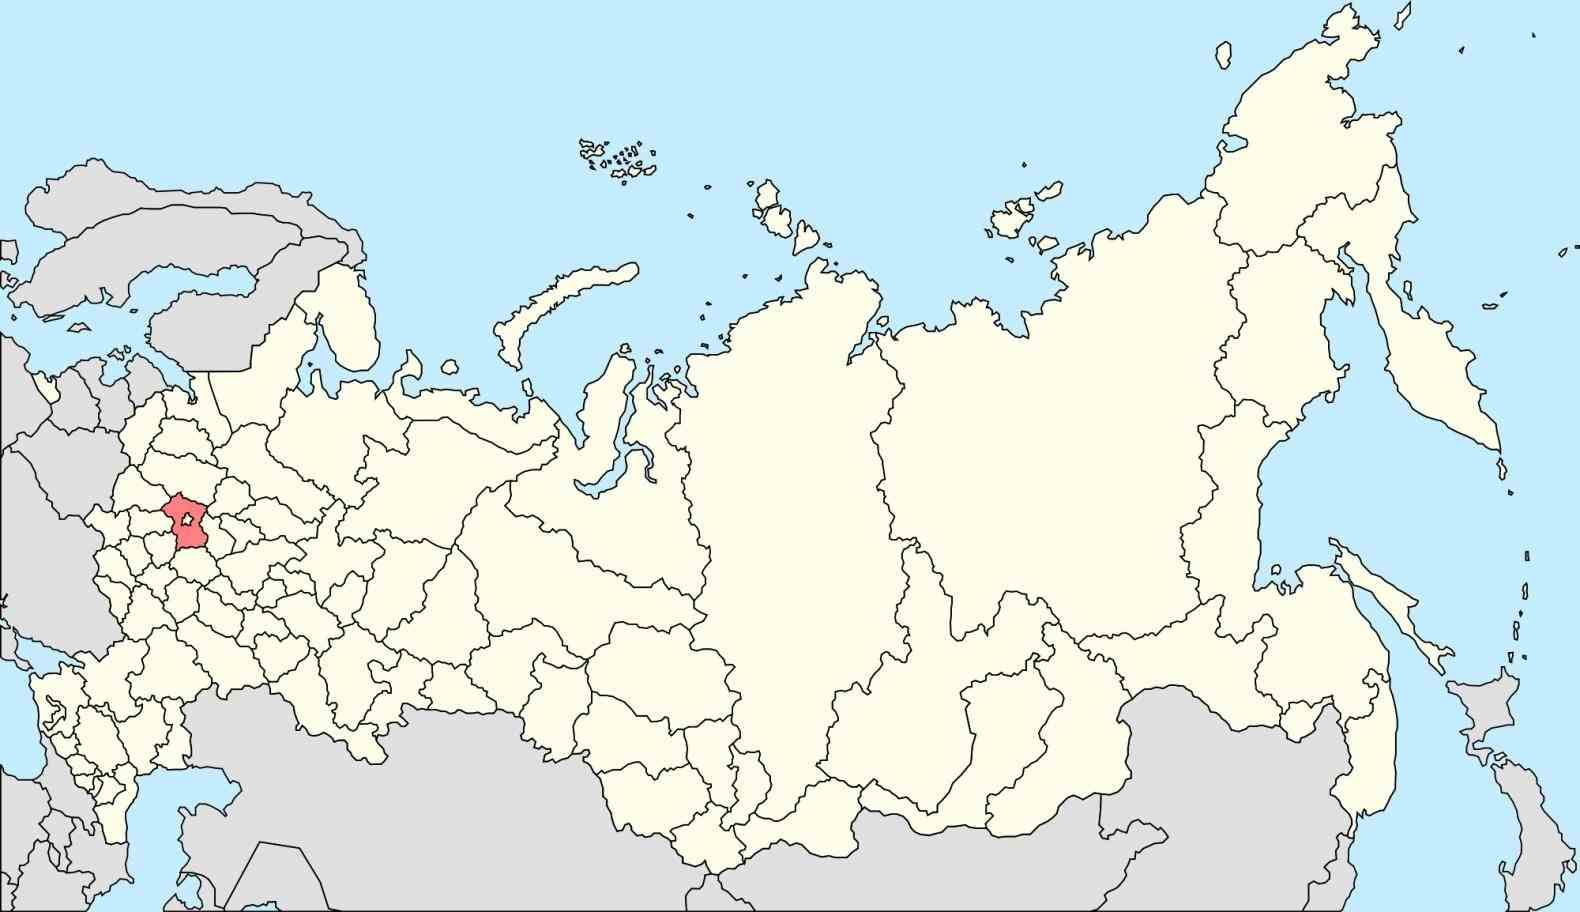 russia map s for free download highresolution and detailed n ...